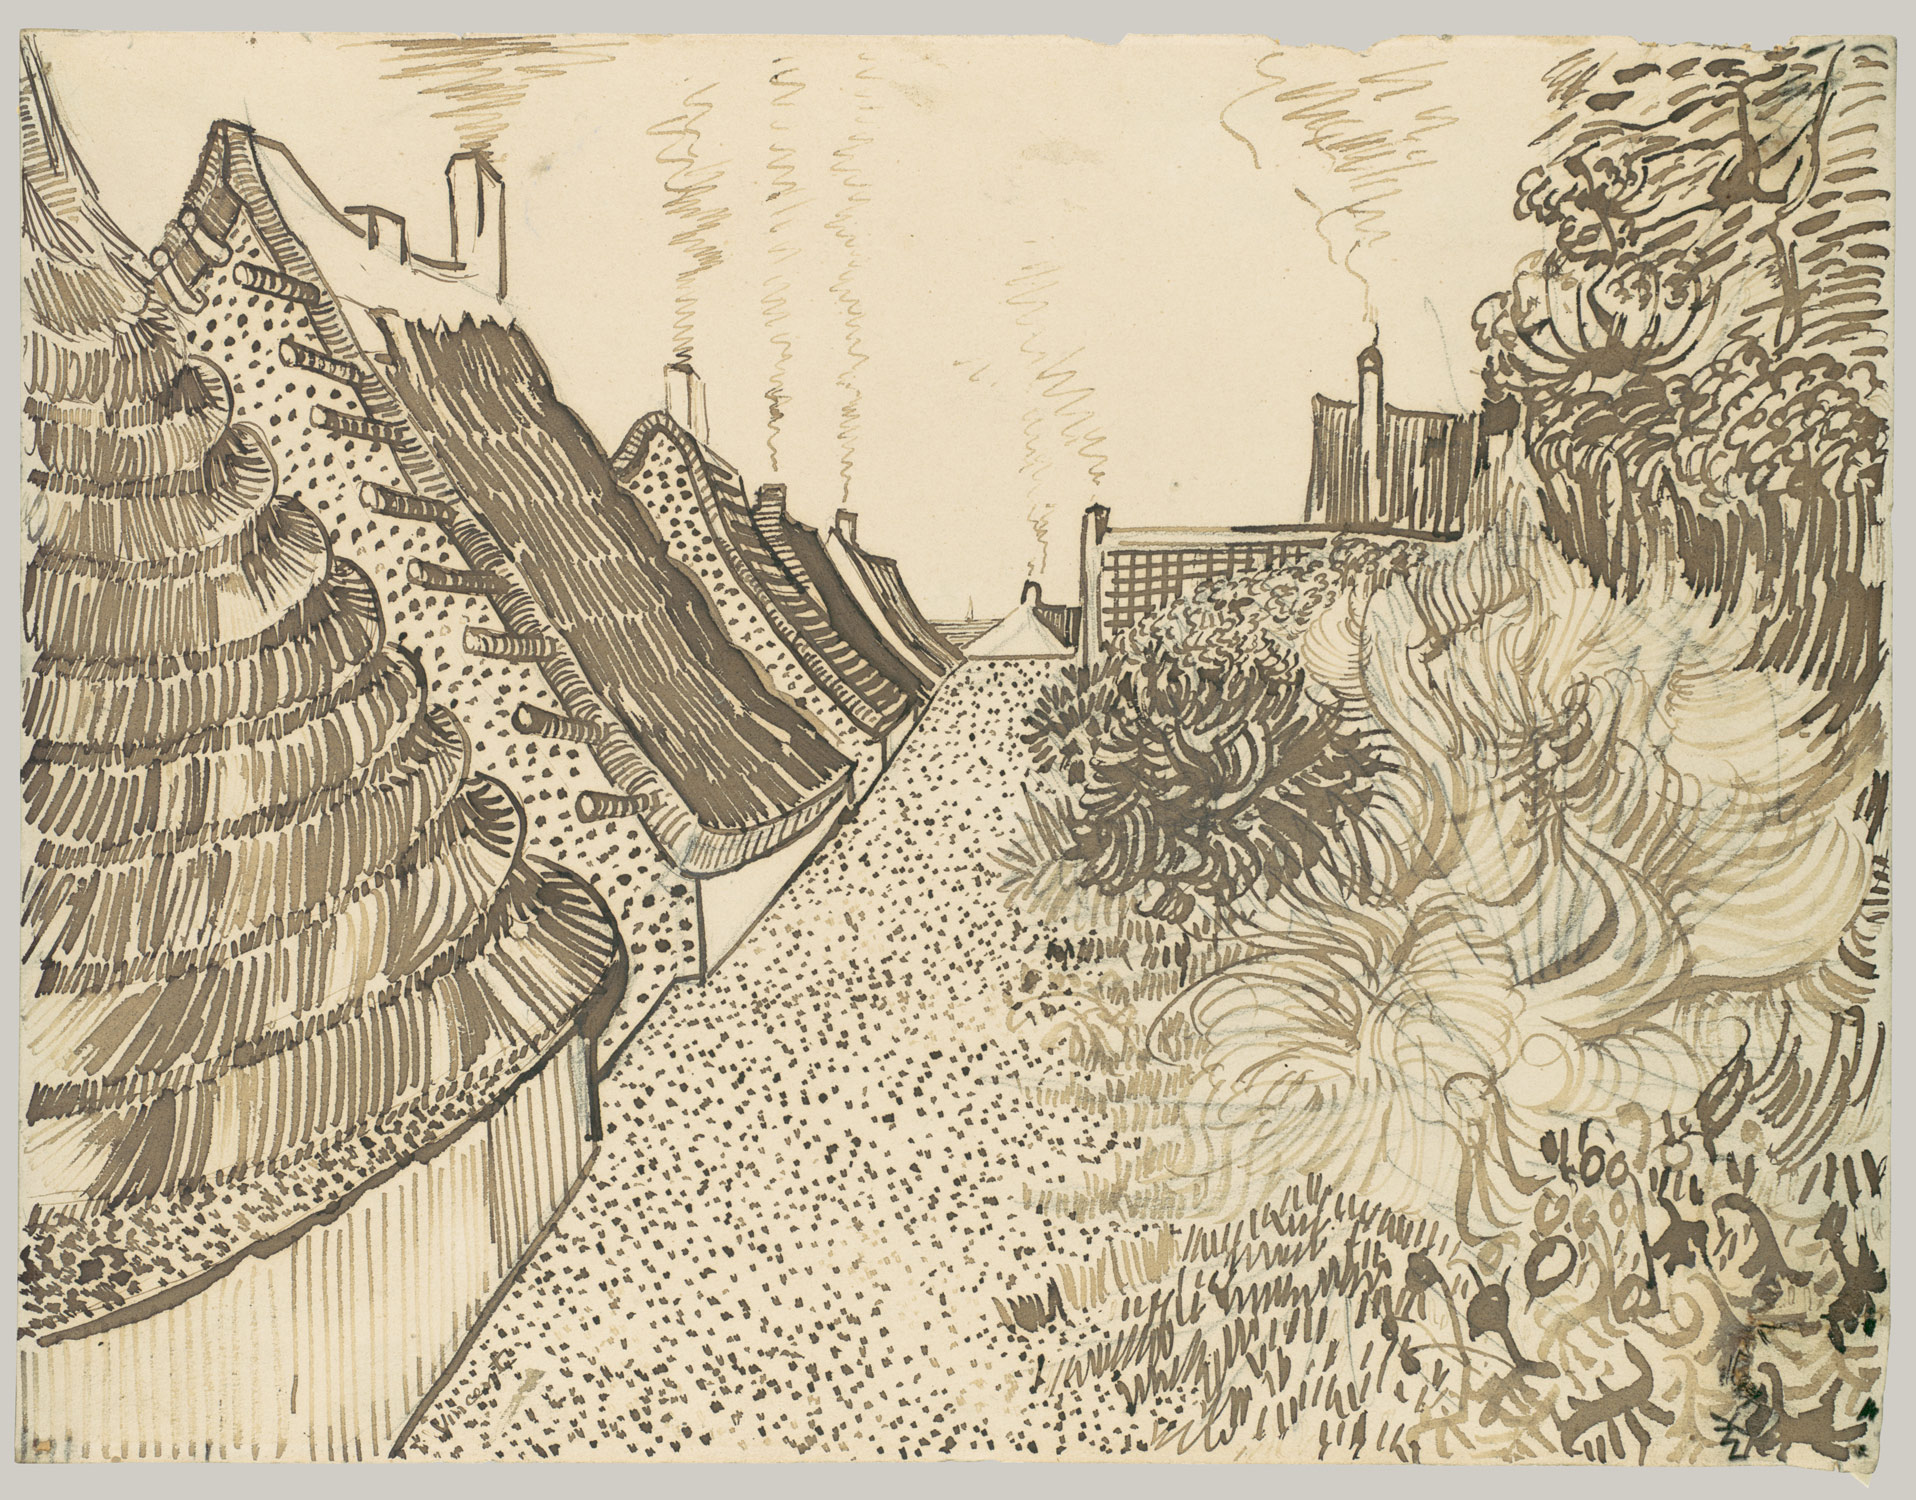 vincent van gogh 1853 1890 the drawings essay heilbrunn street in saintes maries de la mer